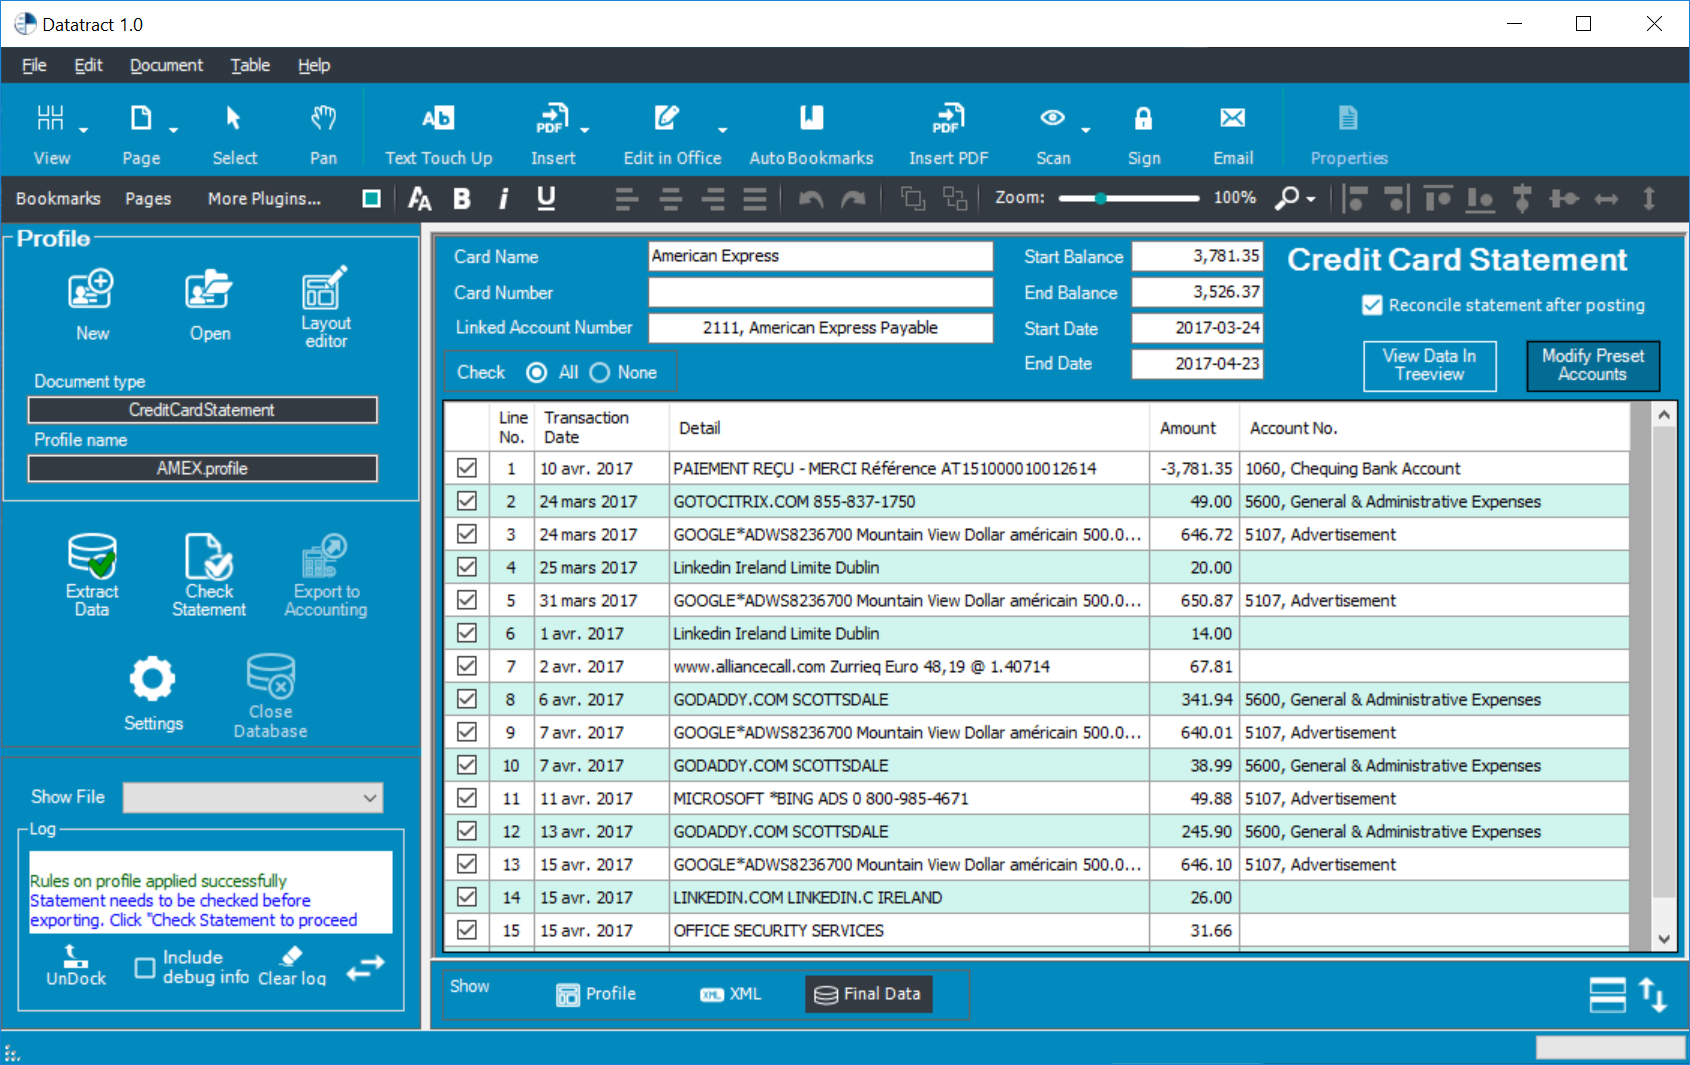 Datatract Screenshot 2